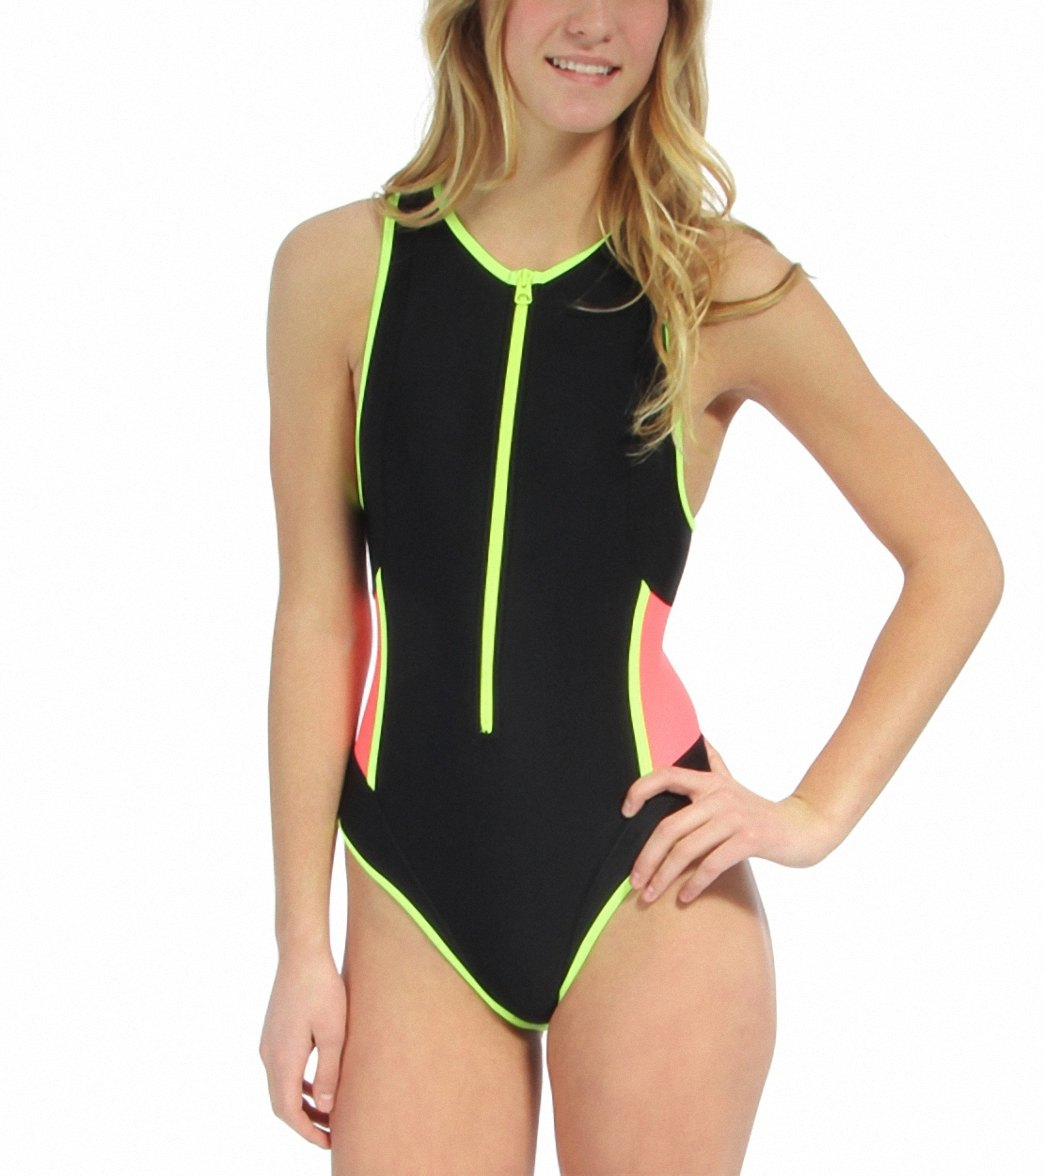 7899a54254 TYR Solid Zipper One Piece at SwimOutlet.com - Free Shipping